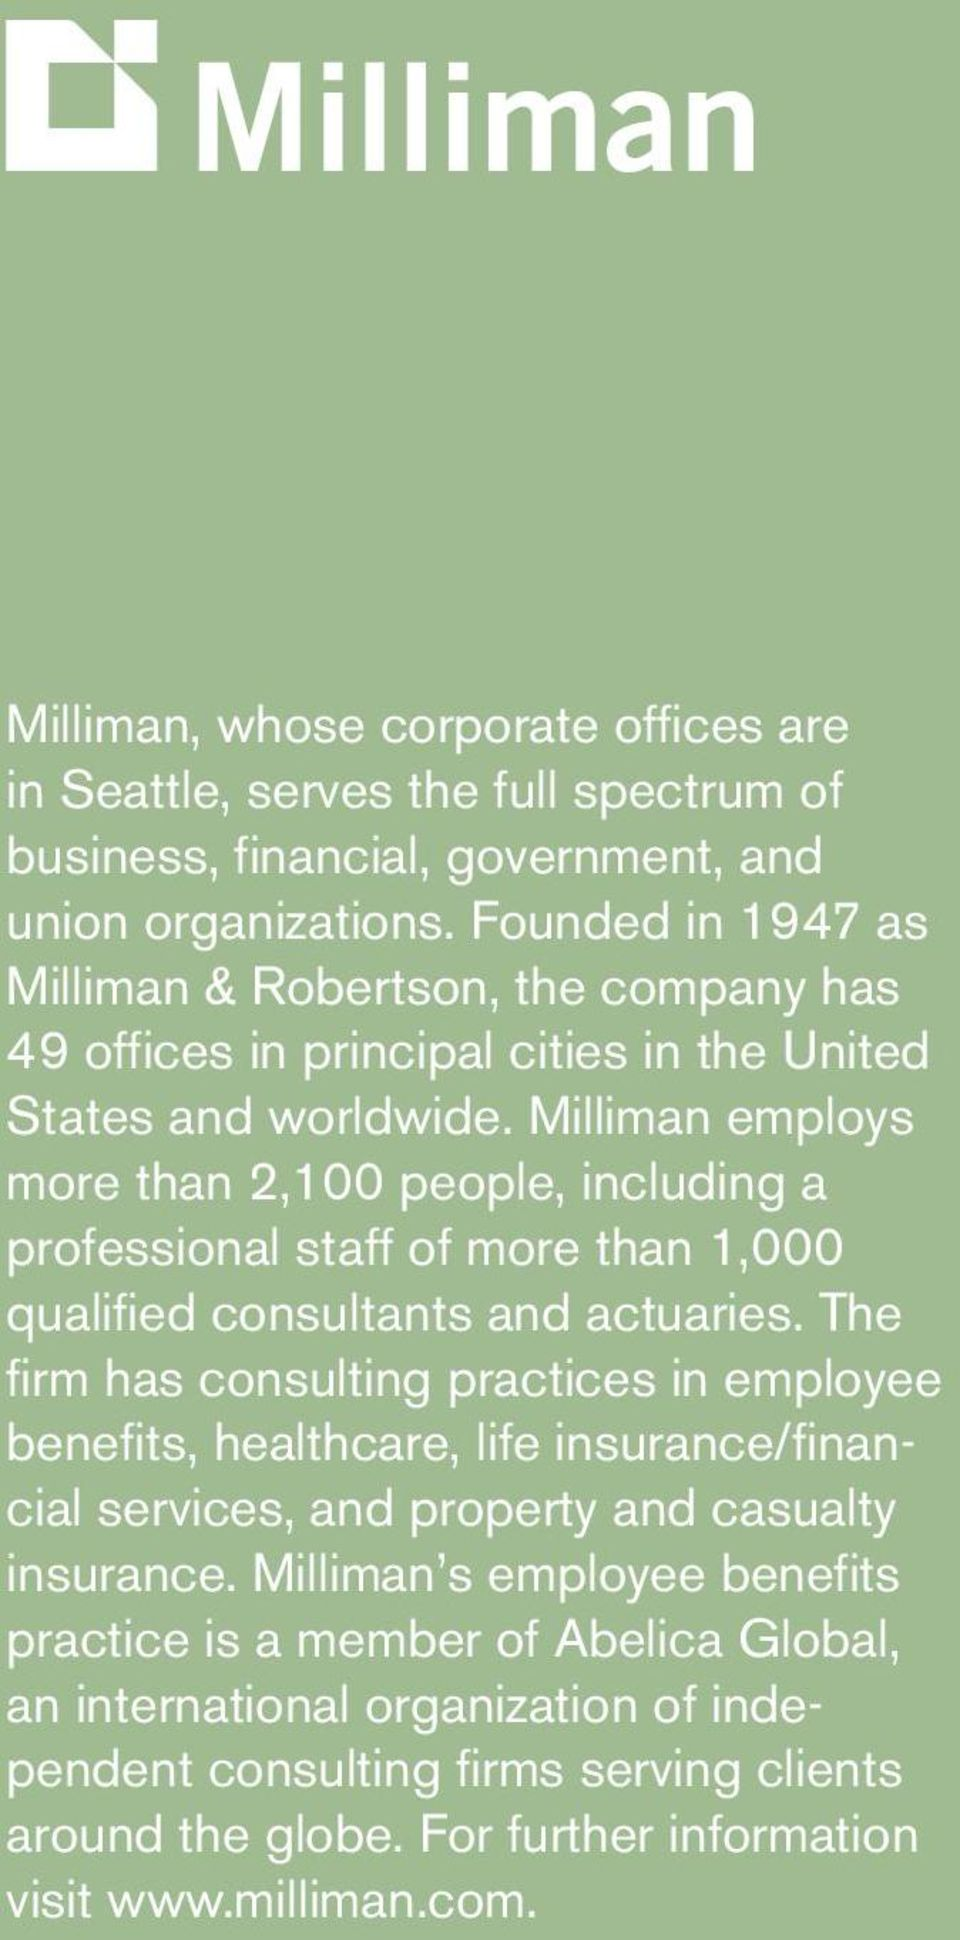 Milliman employs more than 2,100 people, including a professional staff of more than 1,000 qualified consultants and actuaries.